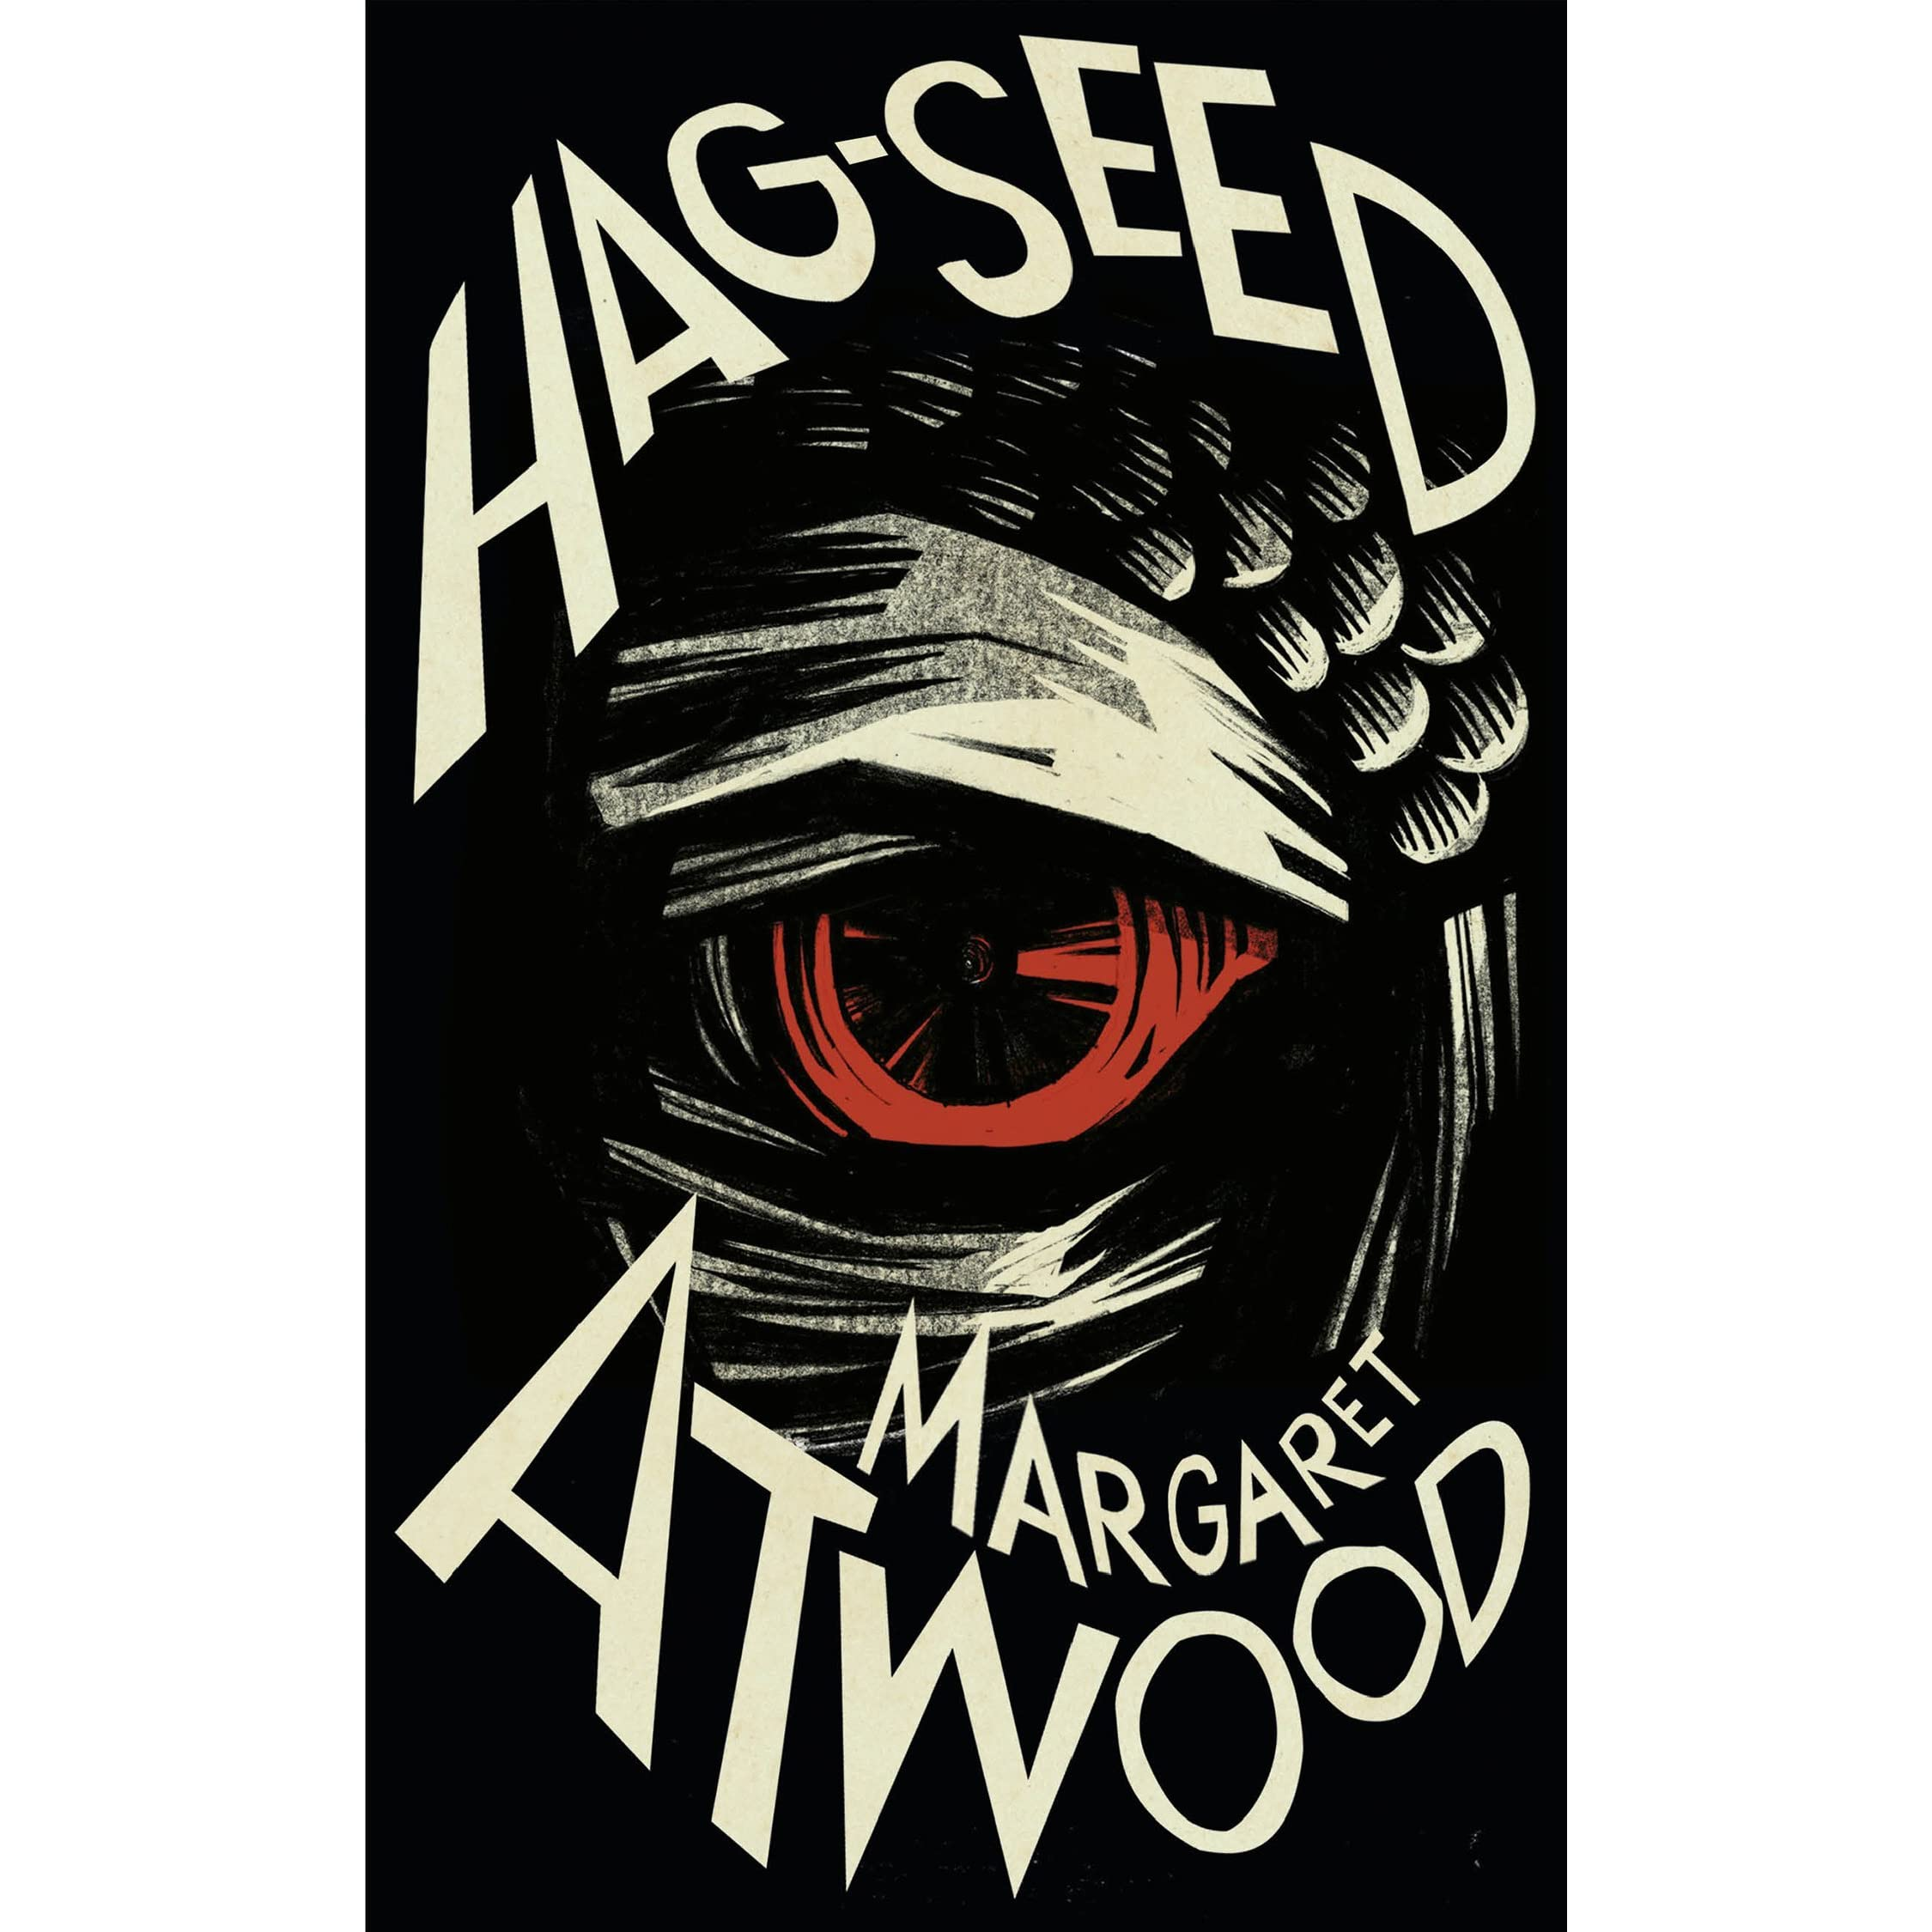 Hag seed the tempest retold by margaret atwood reviews for The atwood